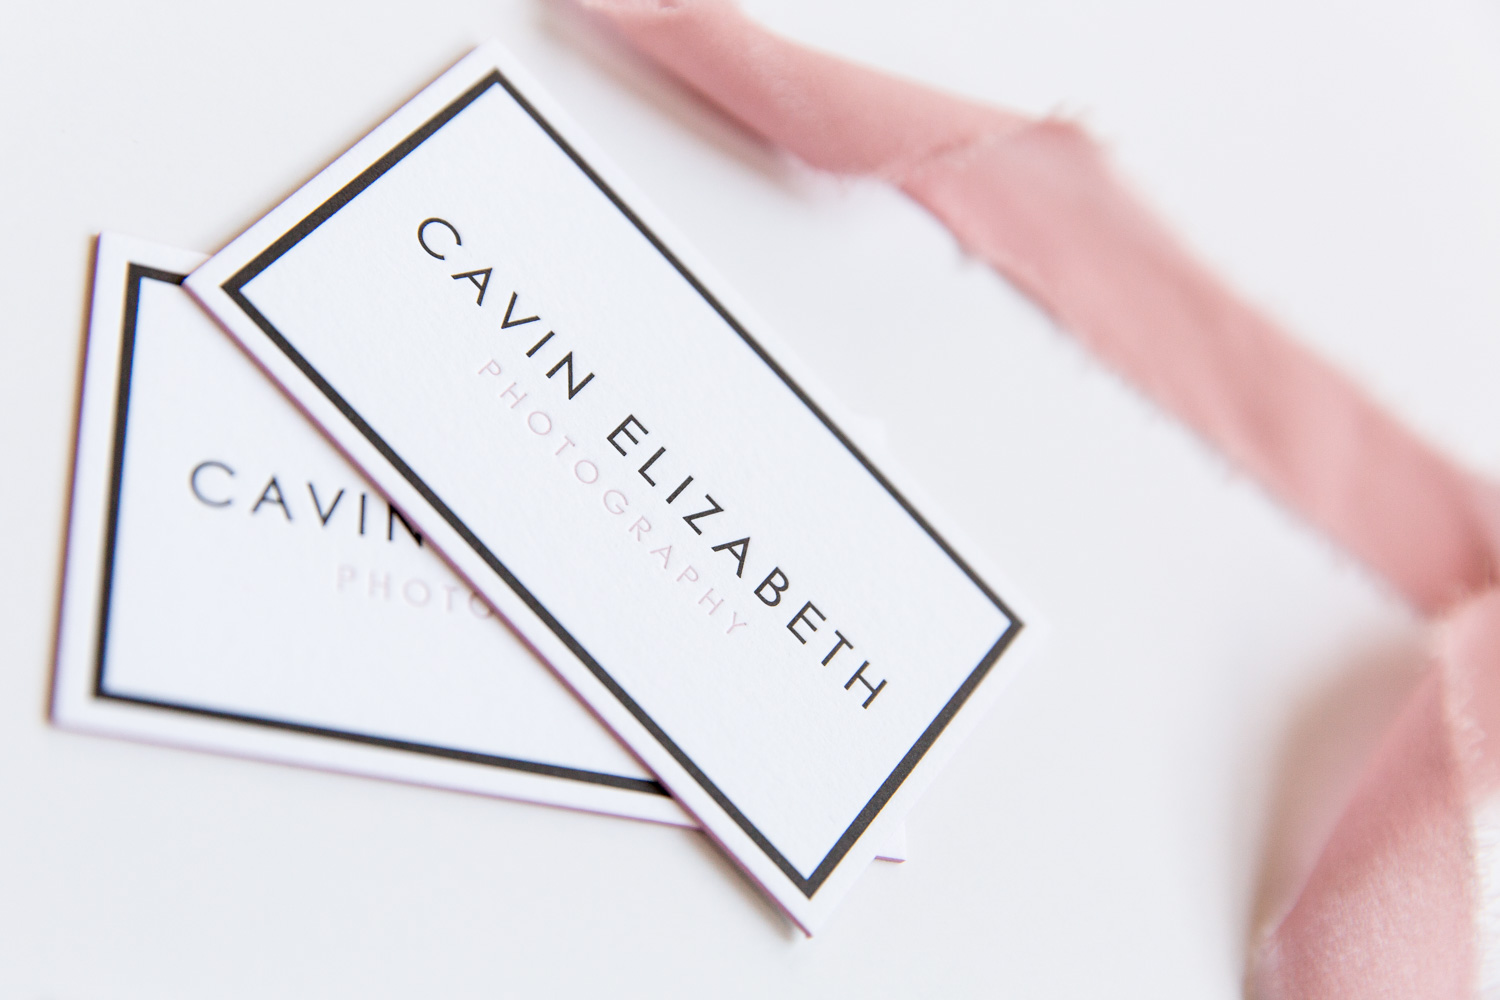 Cavin Elizabeth Letterpress Business Cards | Clove St Press